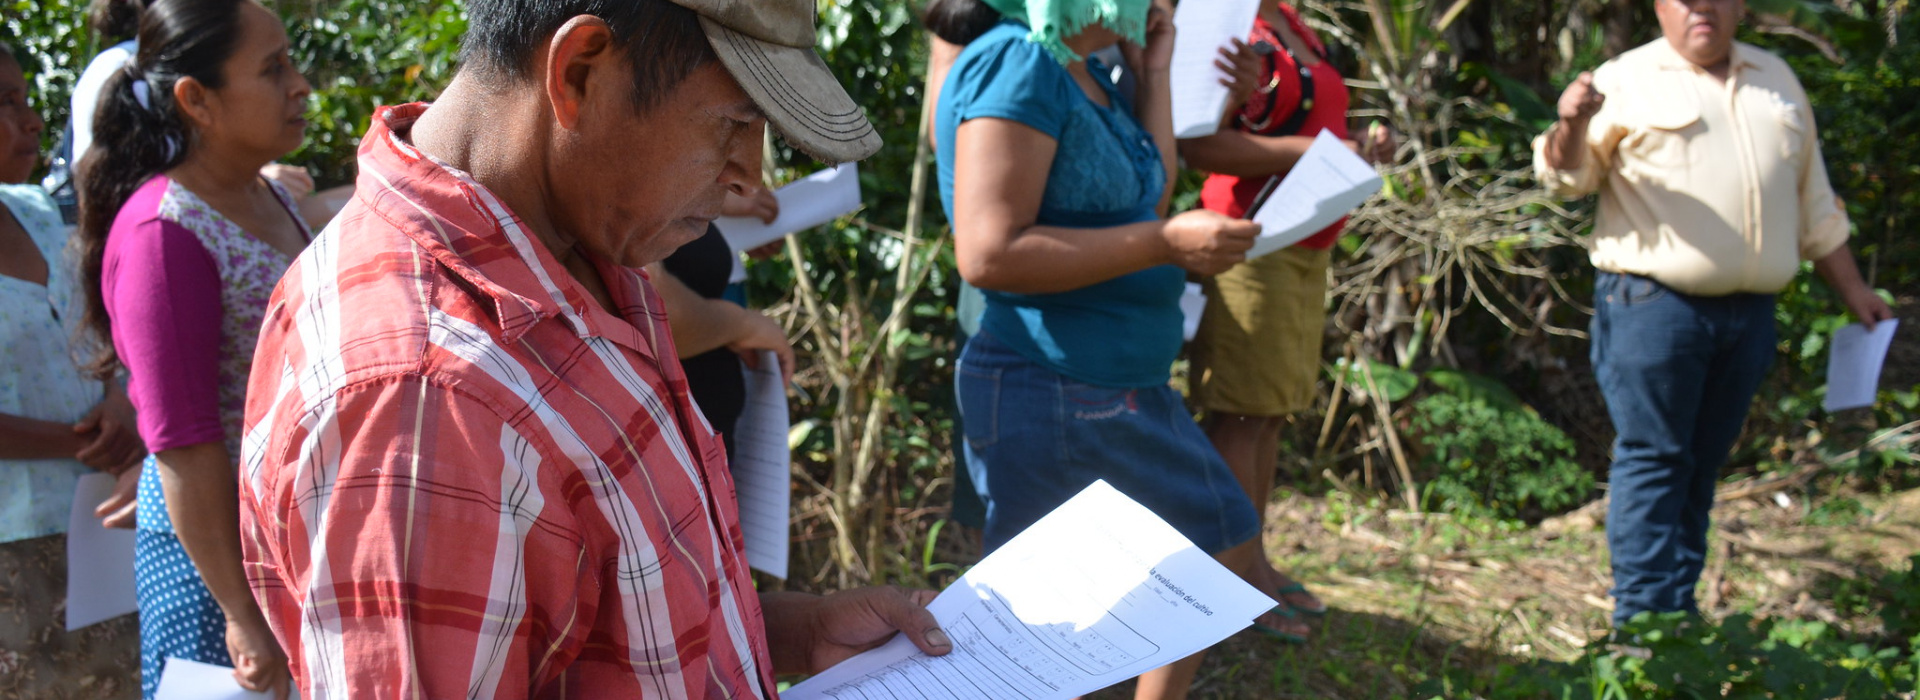 Crop evaluation in La Prensa community of Olopa CSV, Guatemala